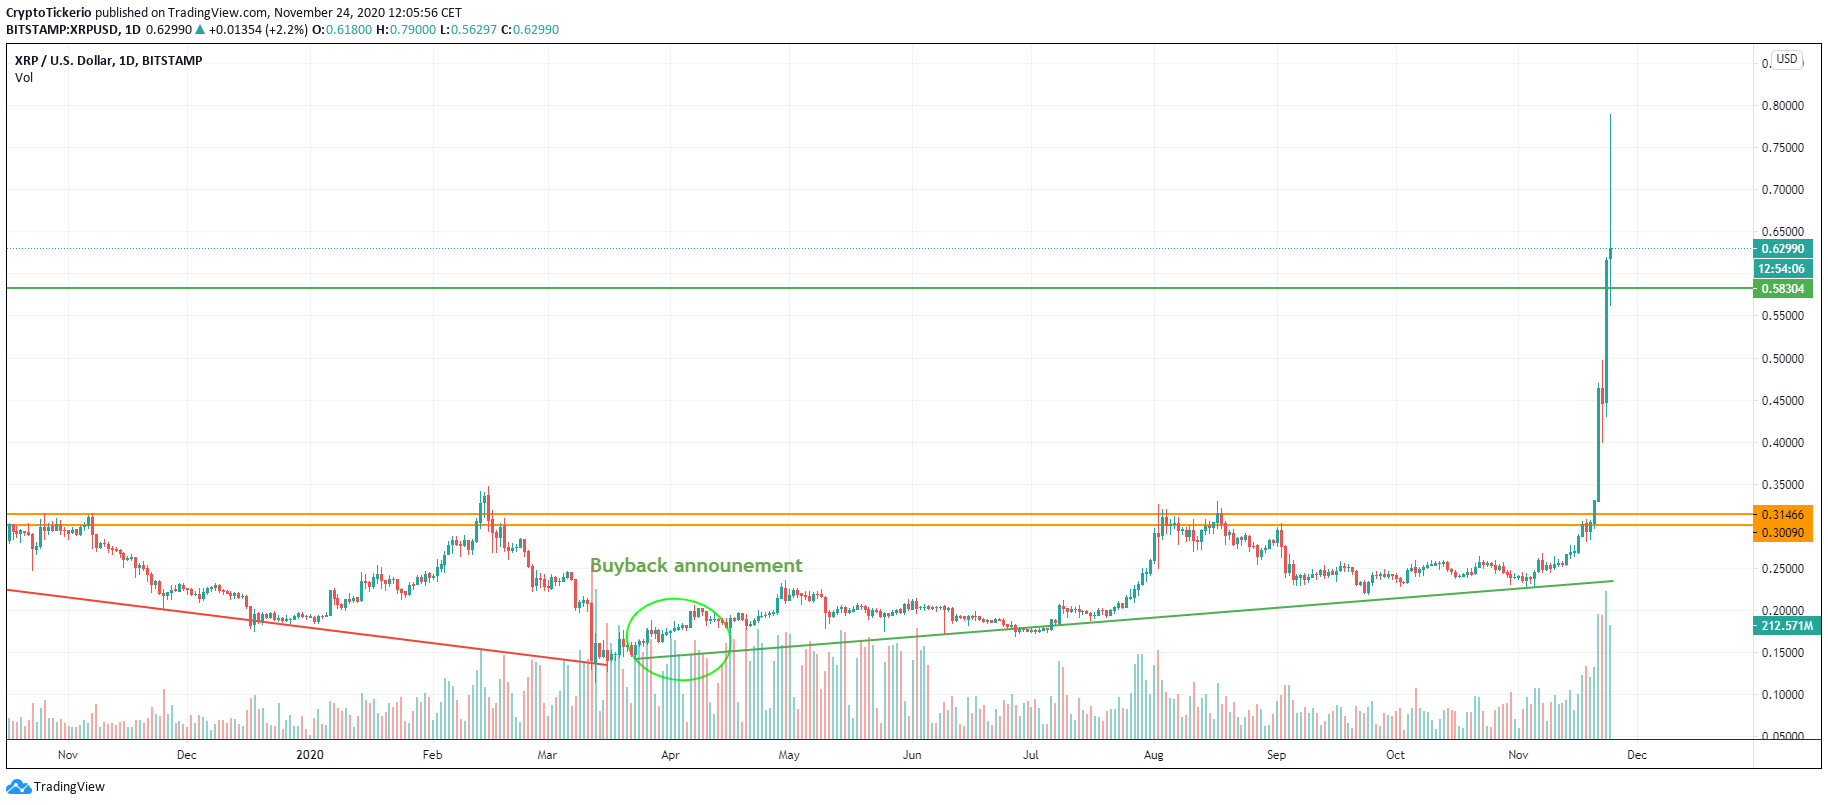 XRP/USD 1-Day chart, Uptrend since the XRP BB announcement